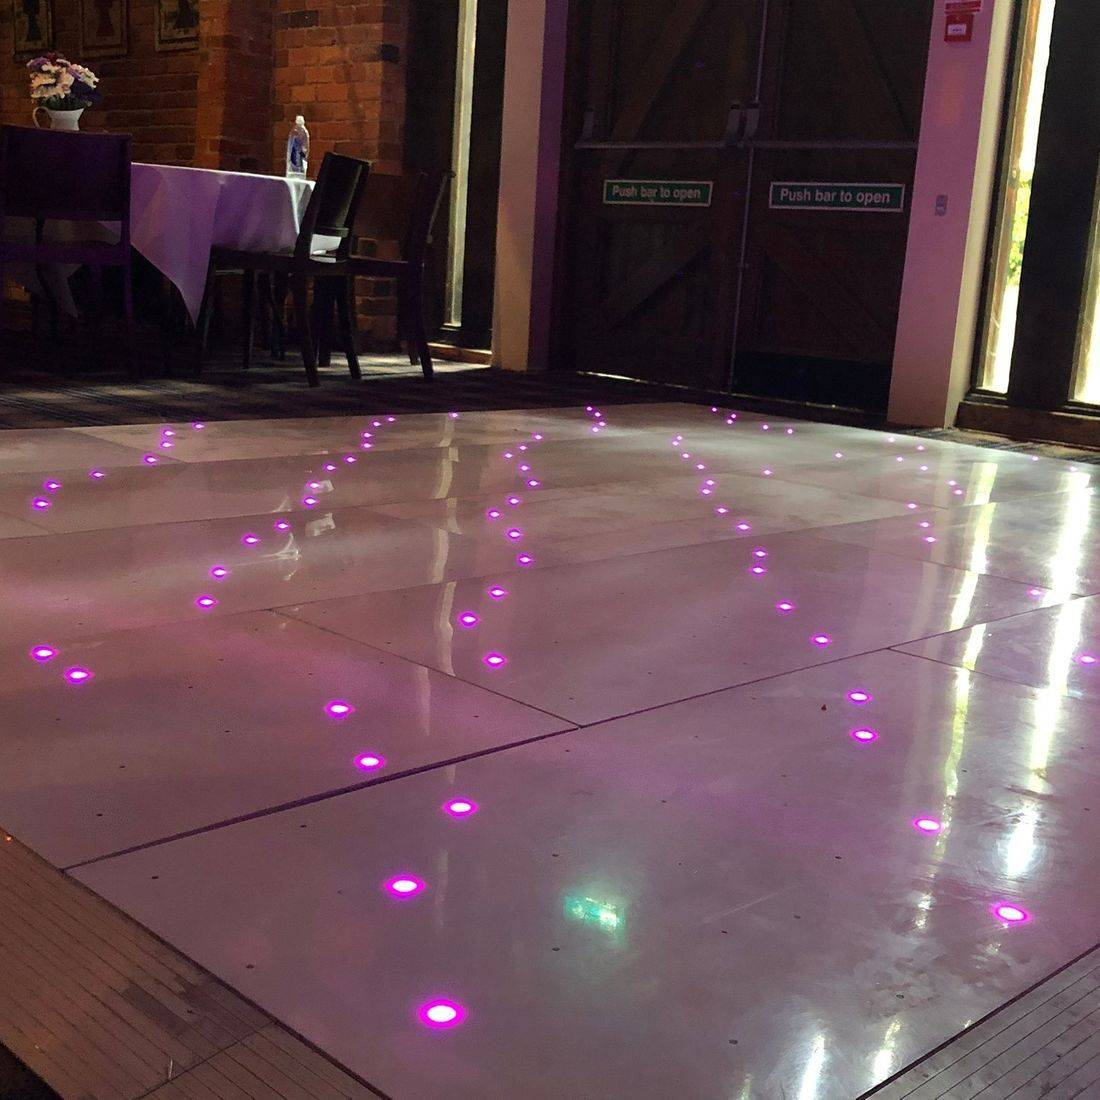 The Bell at Belbroughton  #Worcesterhsire #wedding #dj #weddingentertainment  #leddancefloor